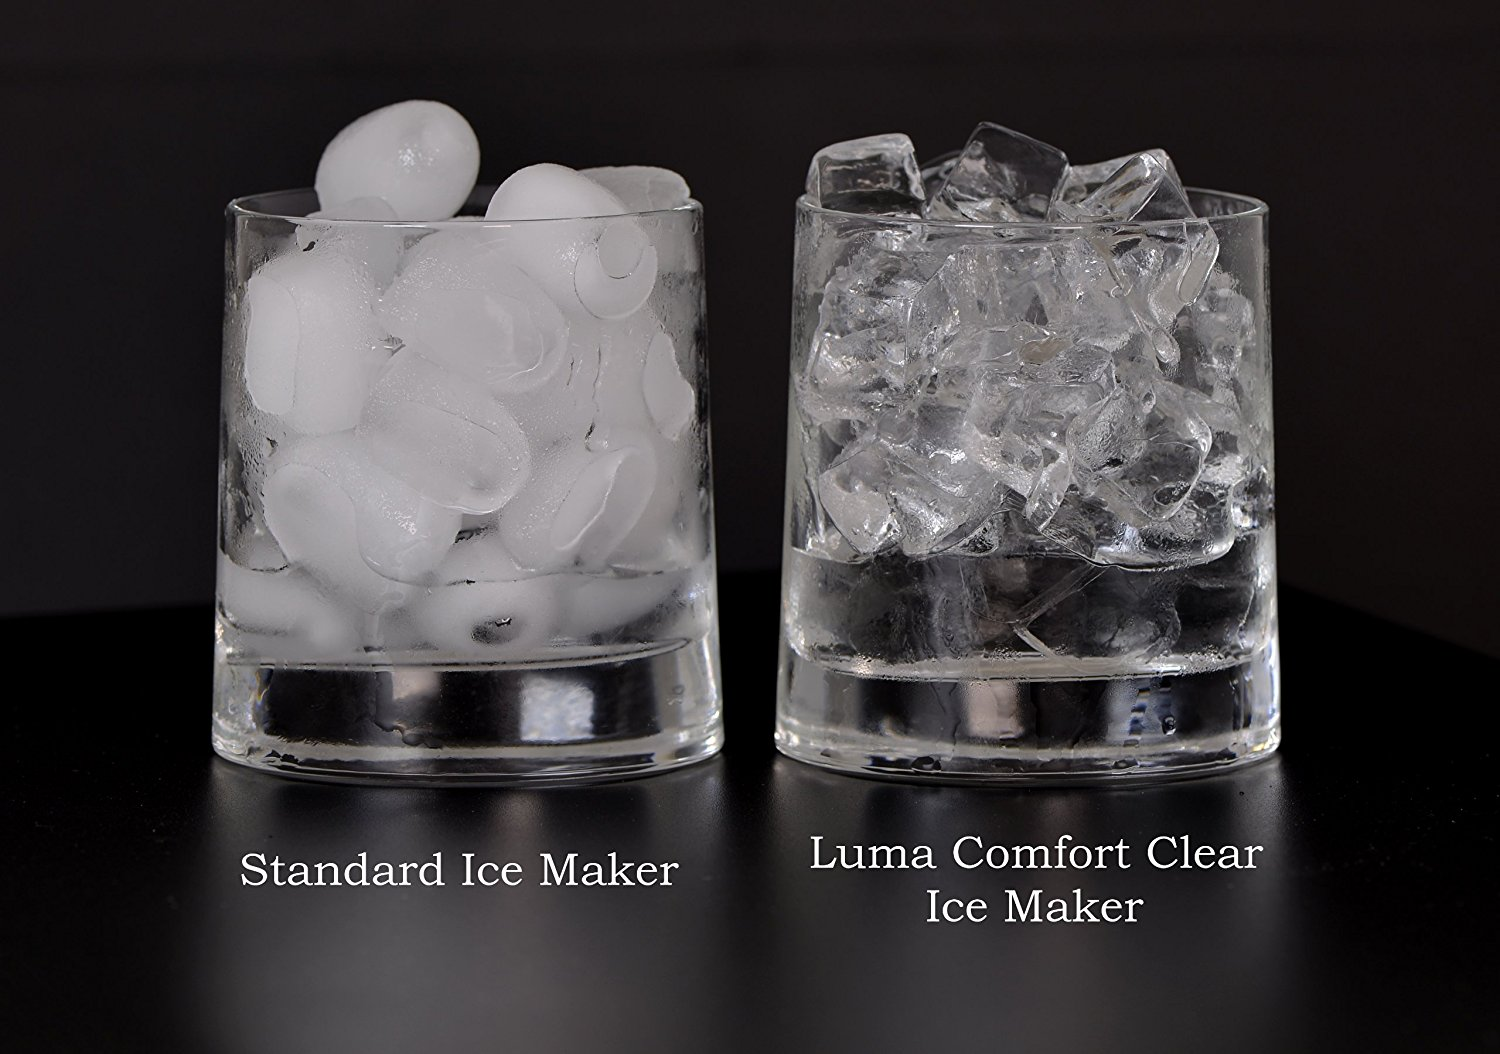 Luma Comfort IM200SS Portable Clear Ice Maker Review